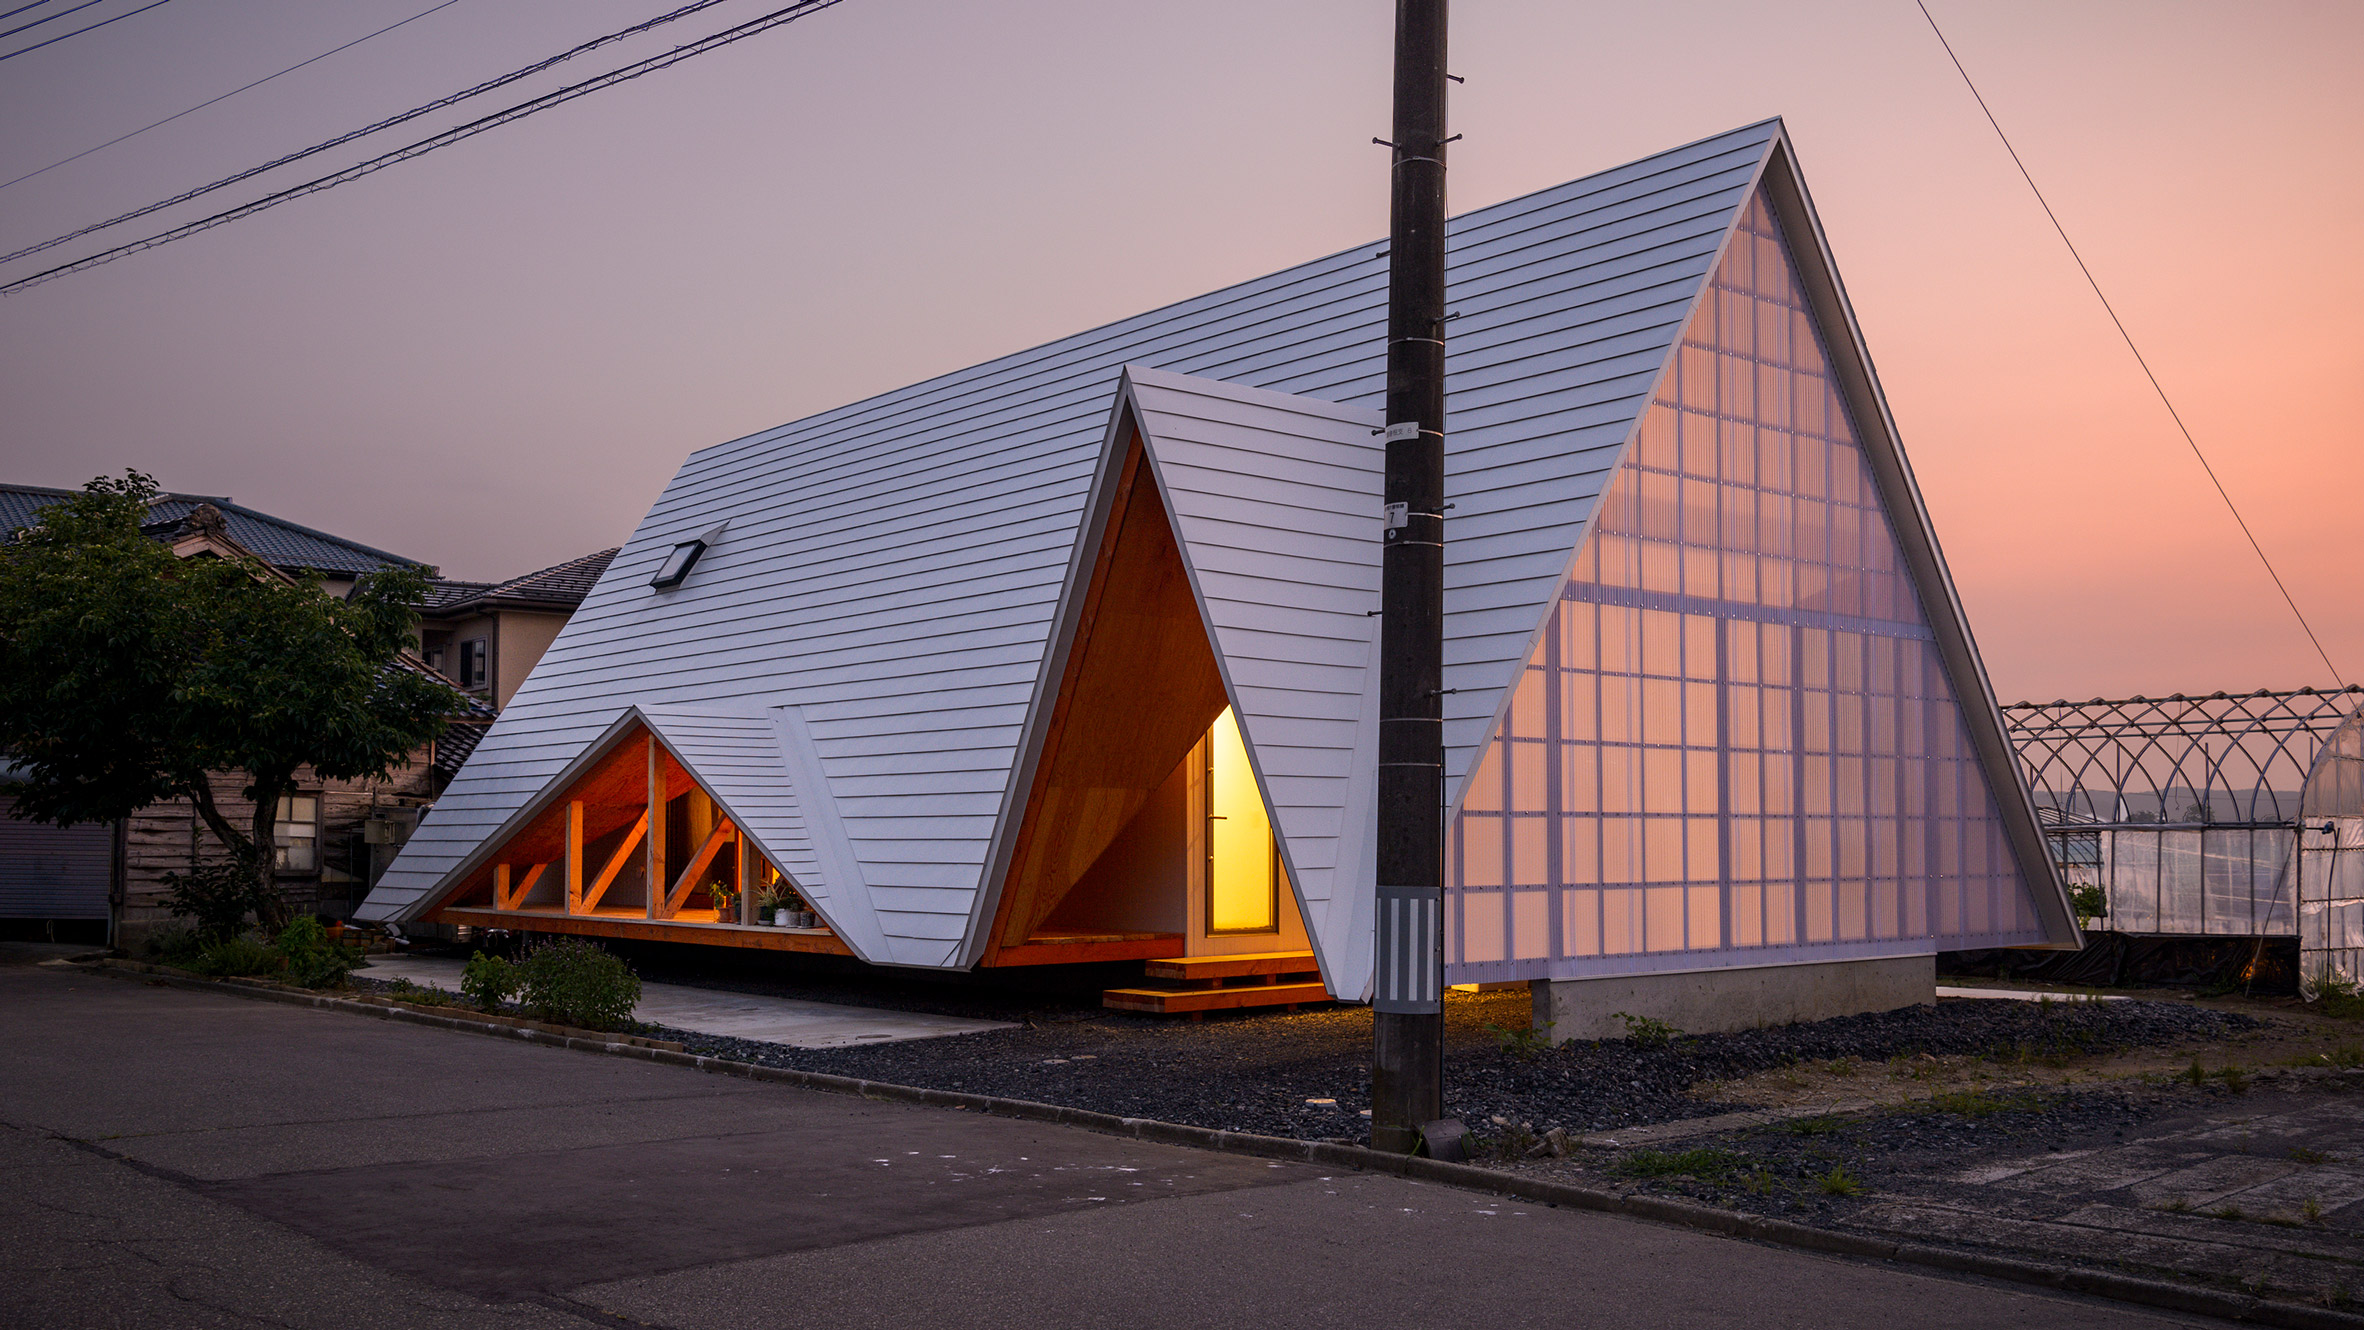 Tent-like Japanese house is designed to welcome neighbors